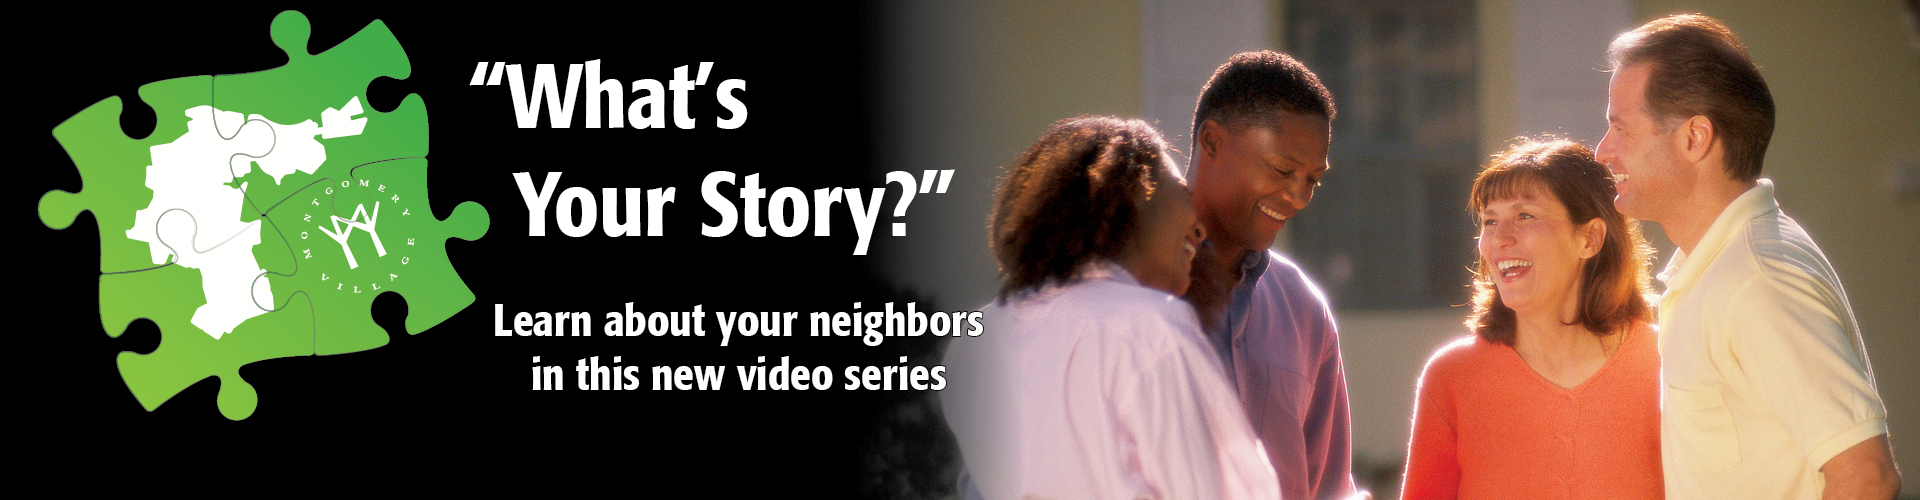 """What's Your Story?"" video series"